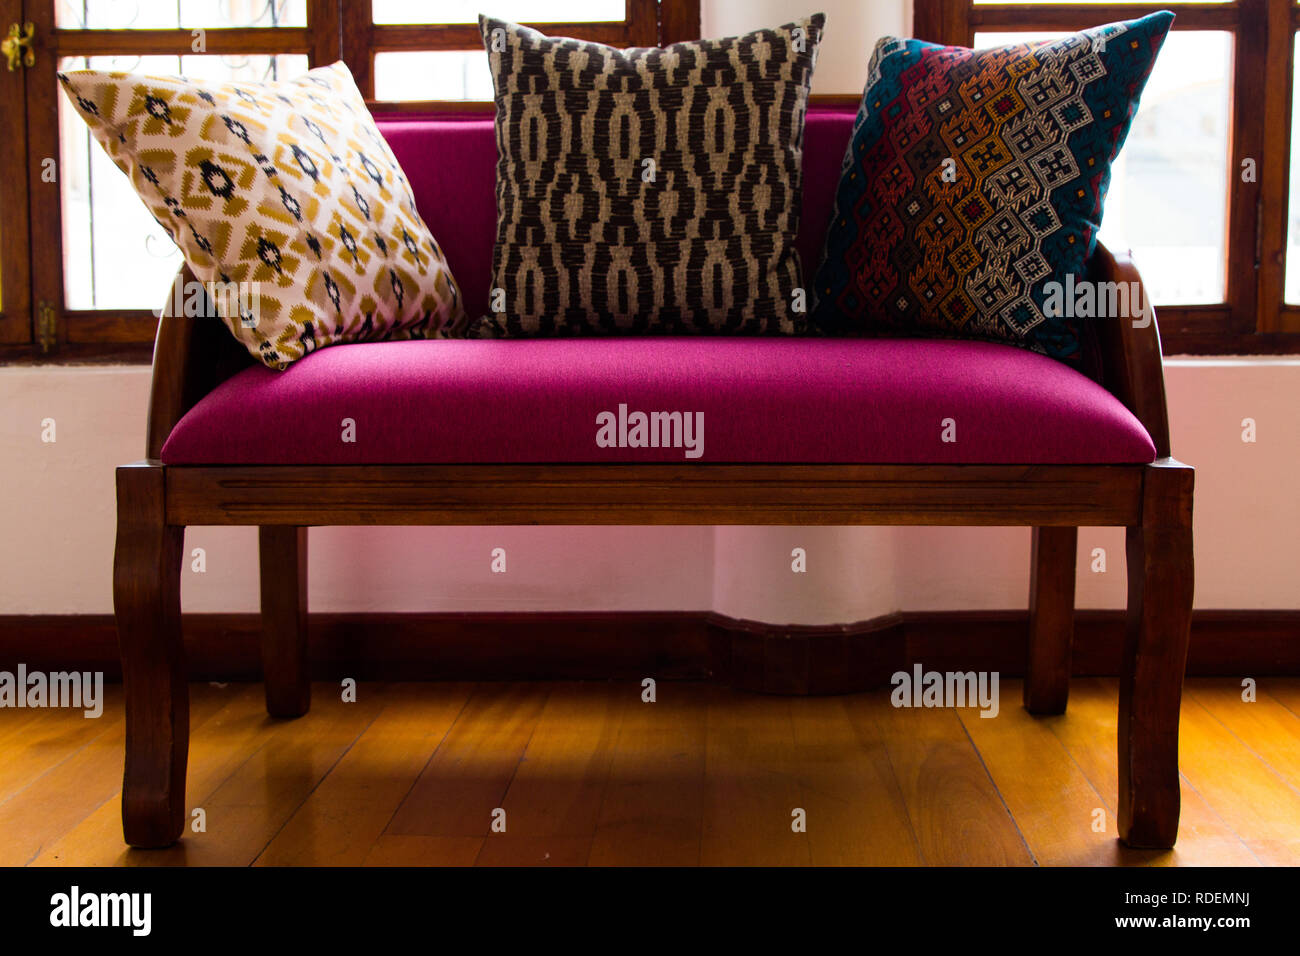 Couch Kissen Sofa Pattern Wood Purple Couch Kissen Muster Sessel Lila